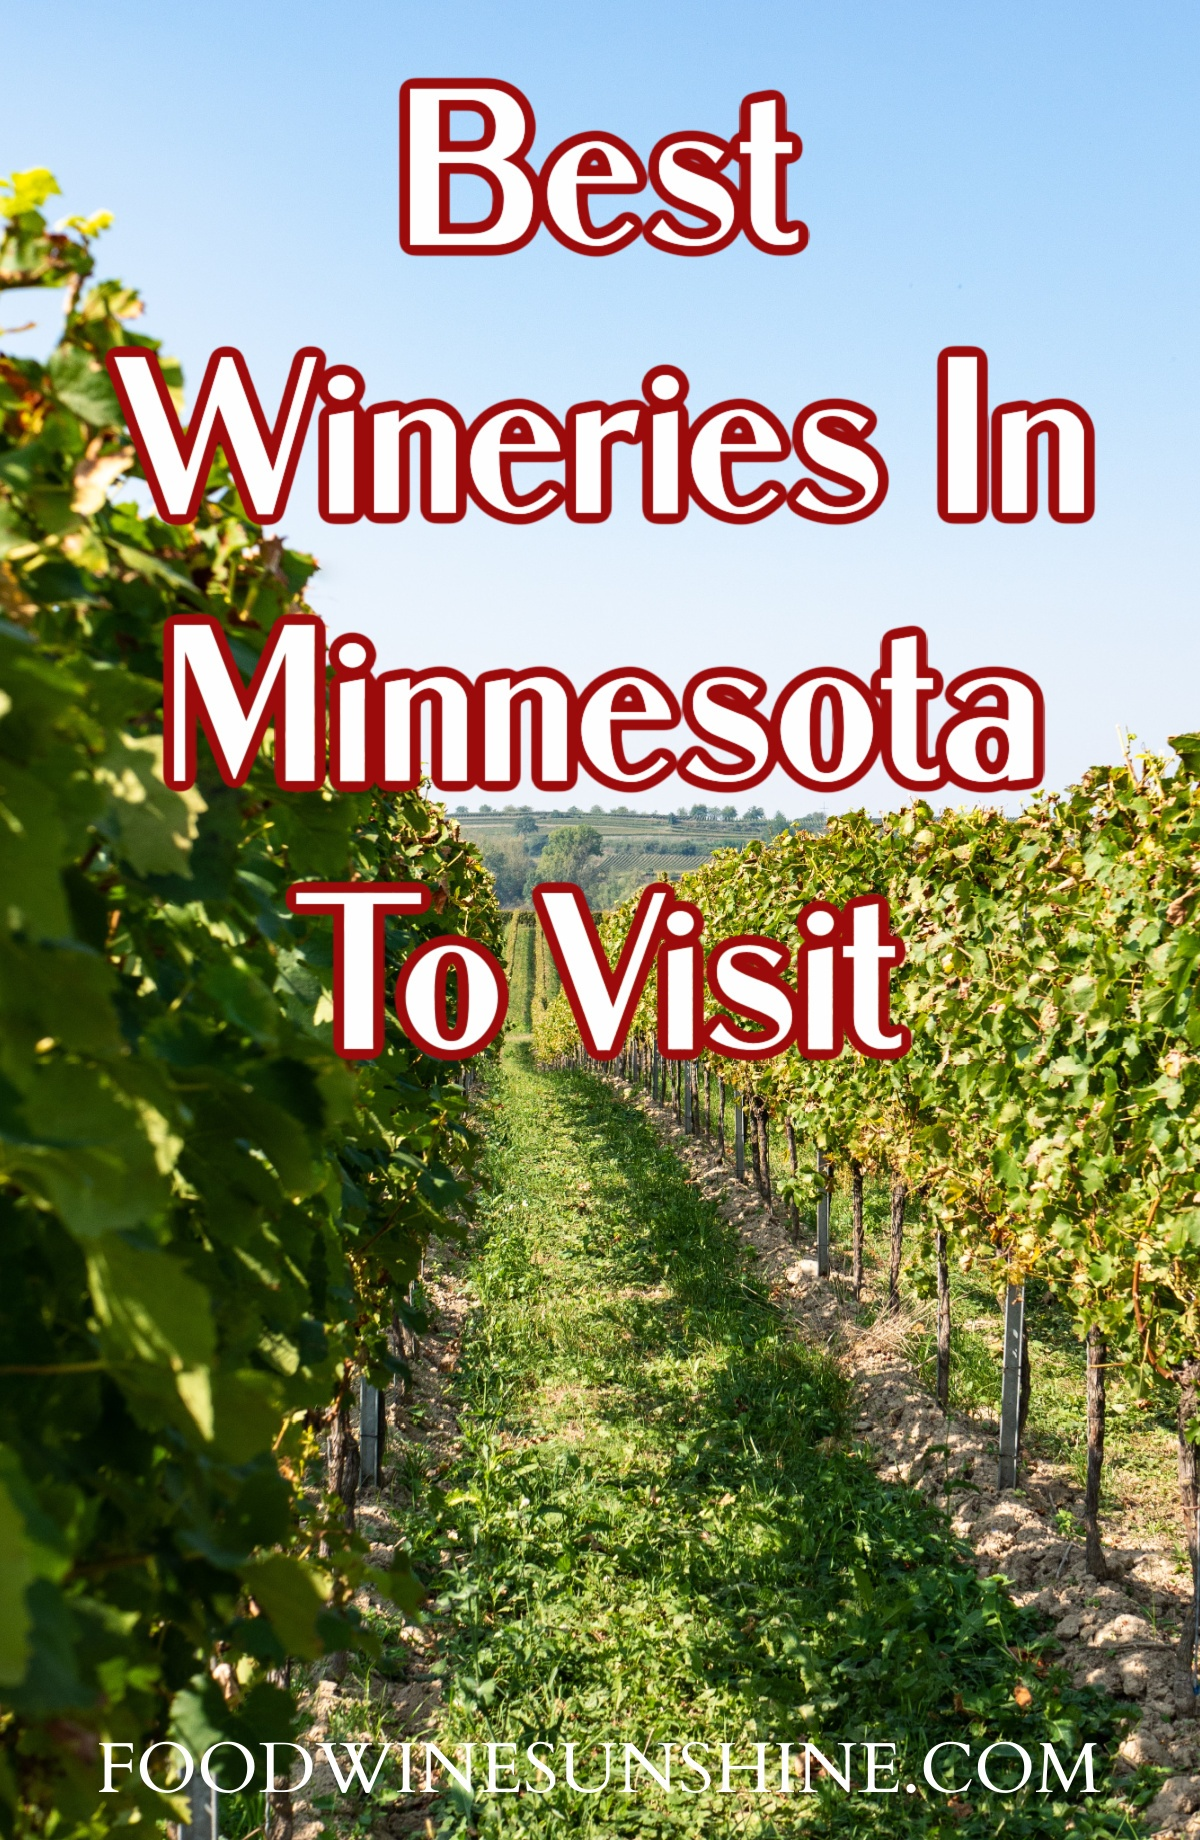 5 Of The Best Wineries In Minnesota To Visit